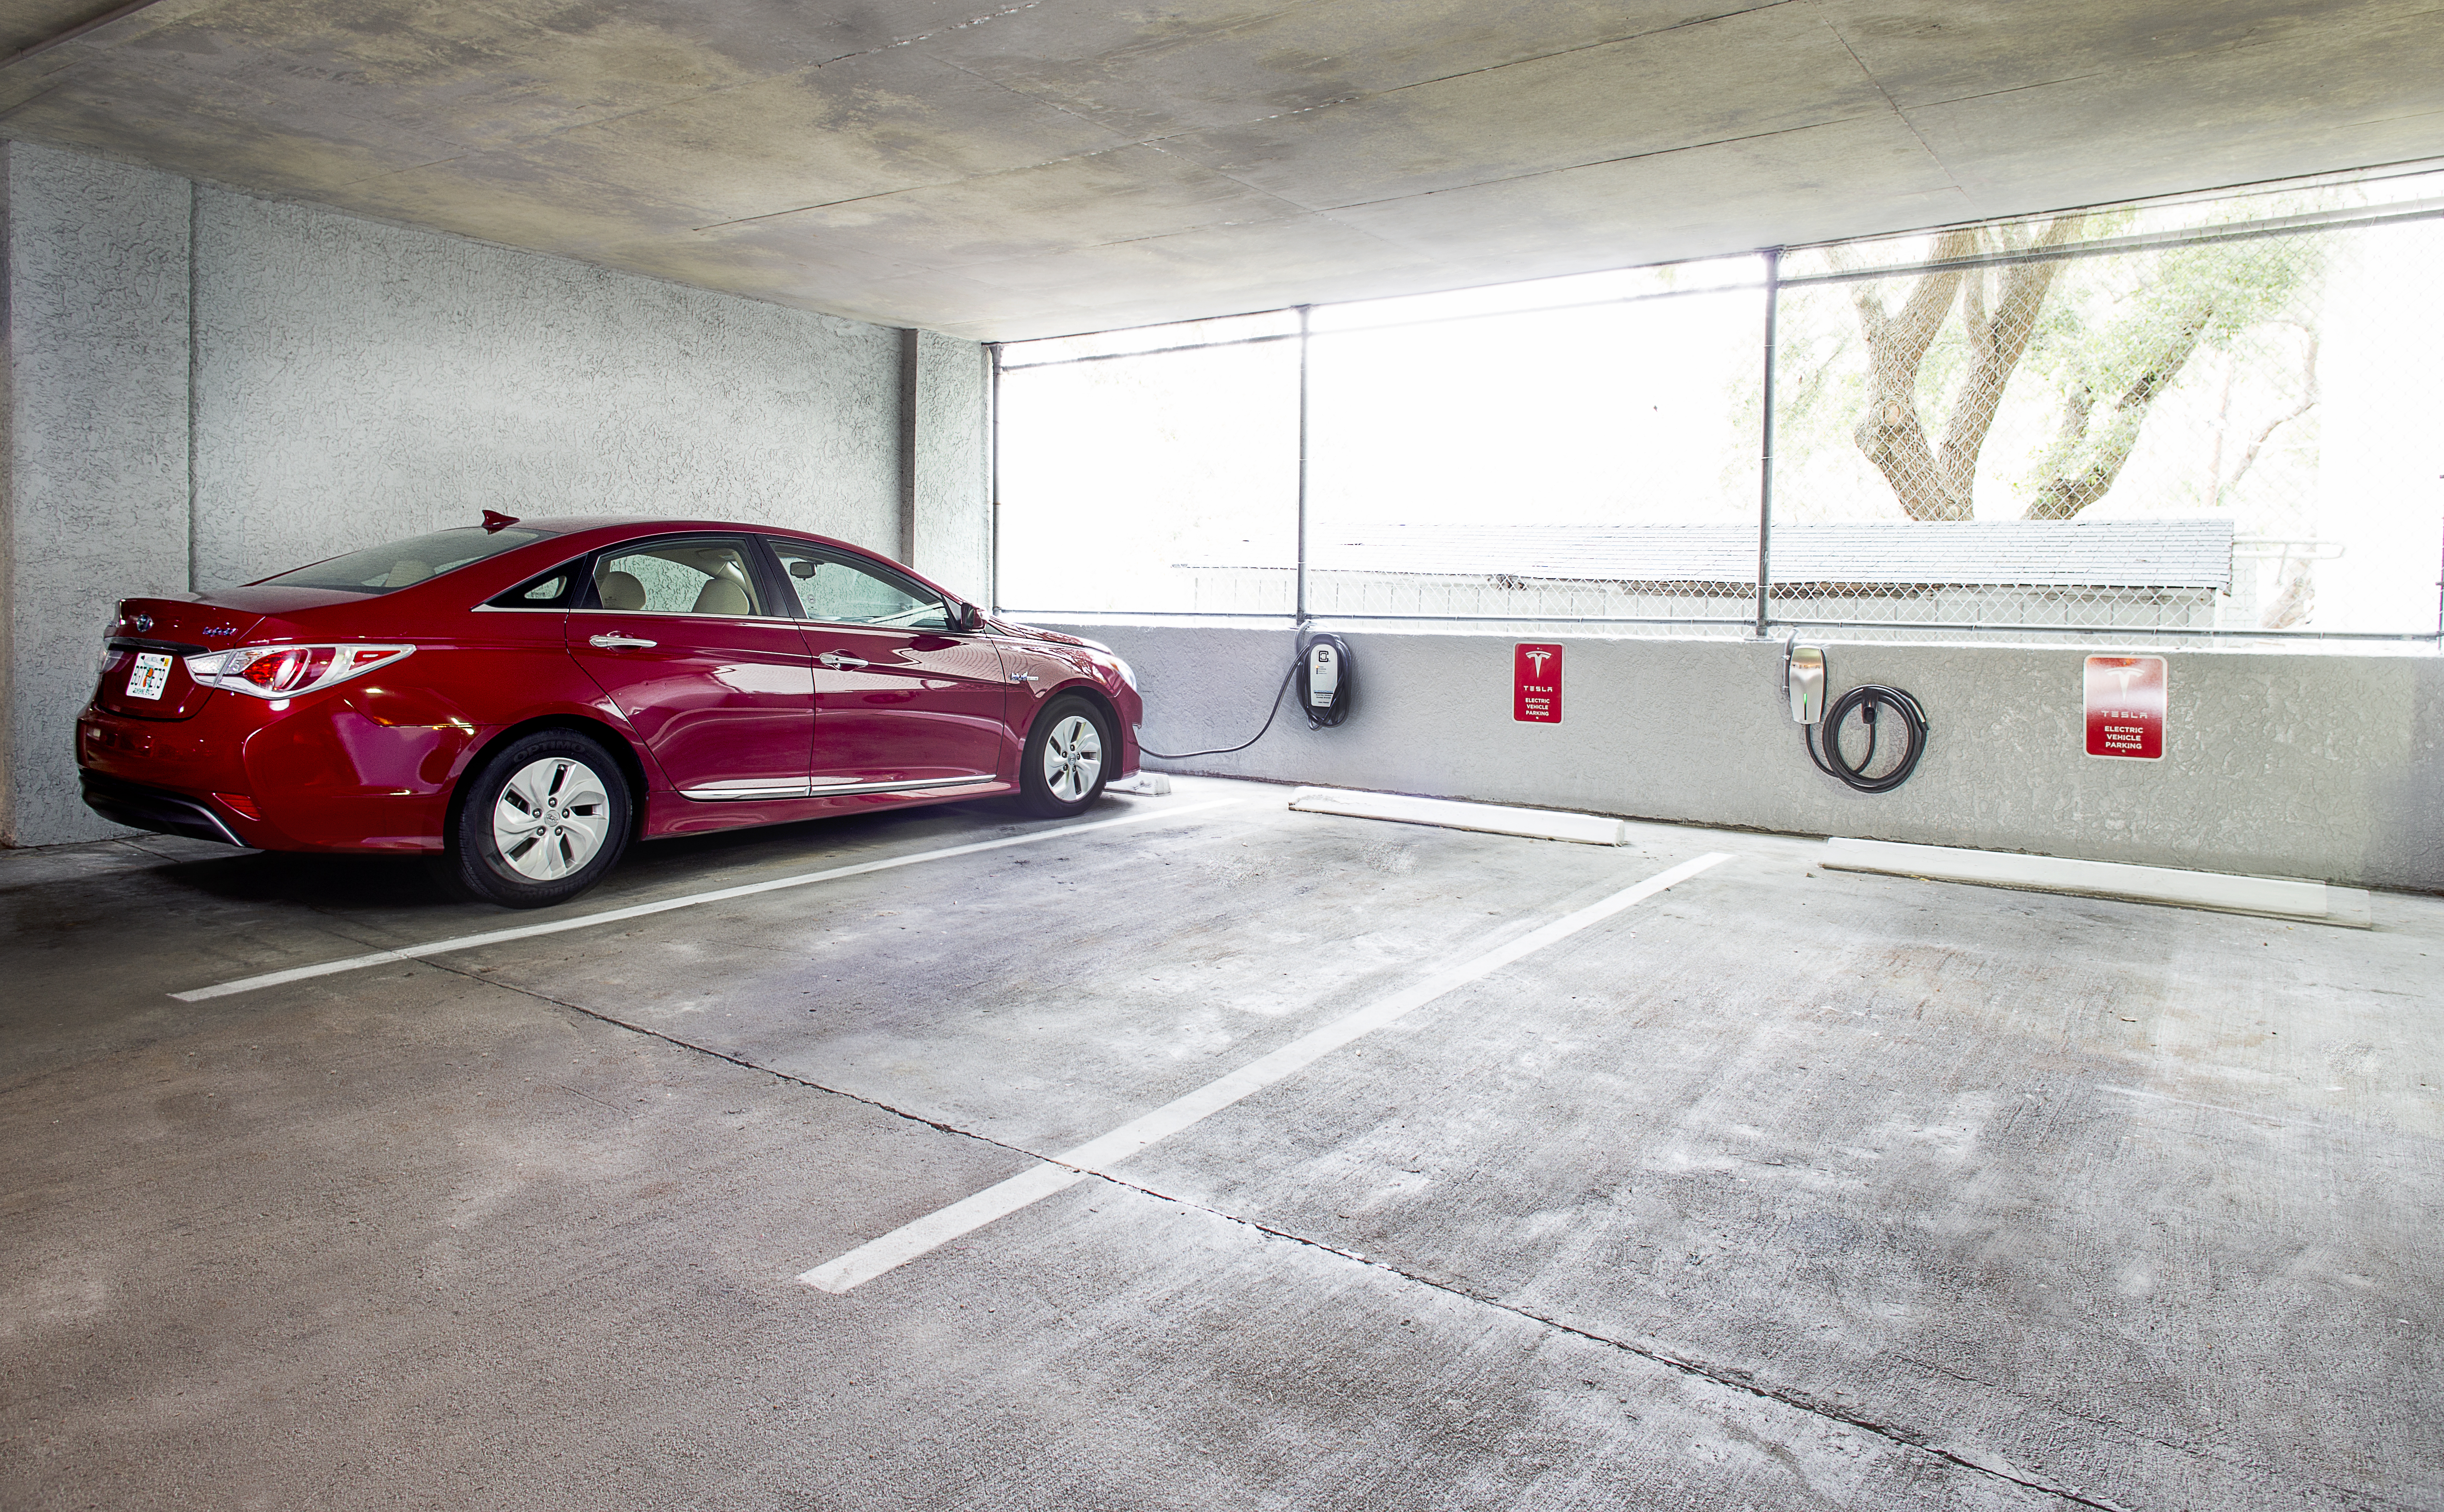 Caribbean Resort Goes Green With Free Recharging Stations for Guests With Hybrid Cars